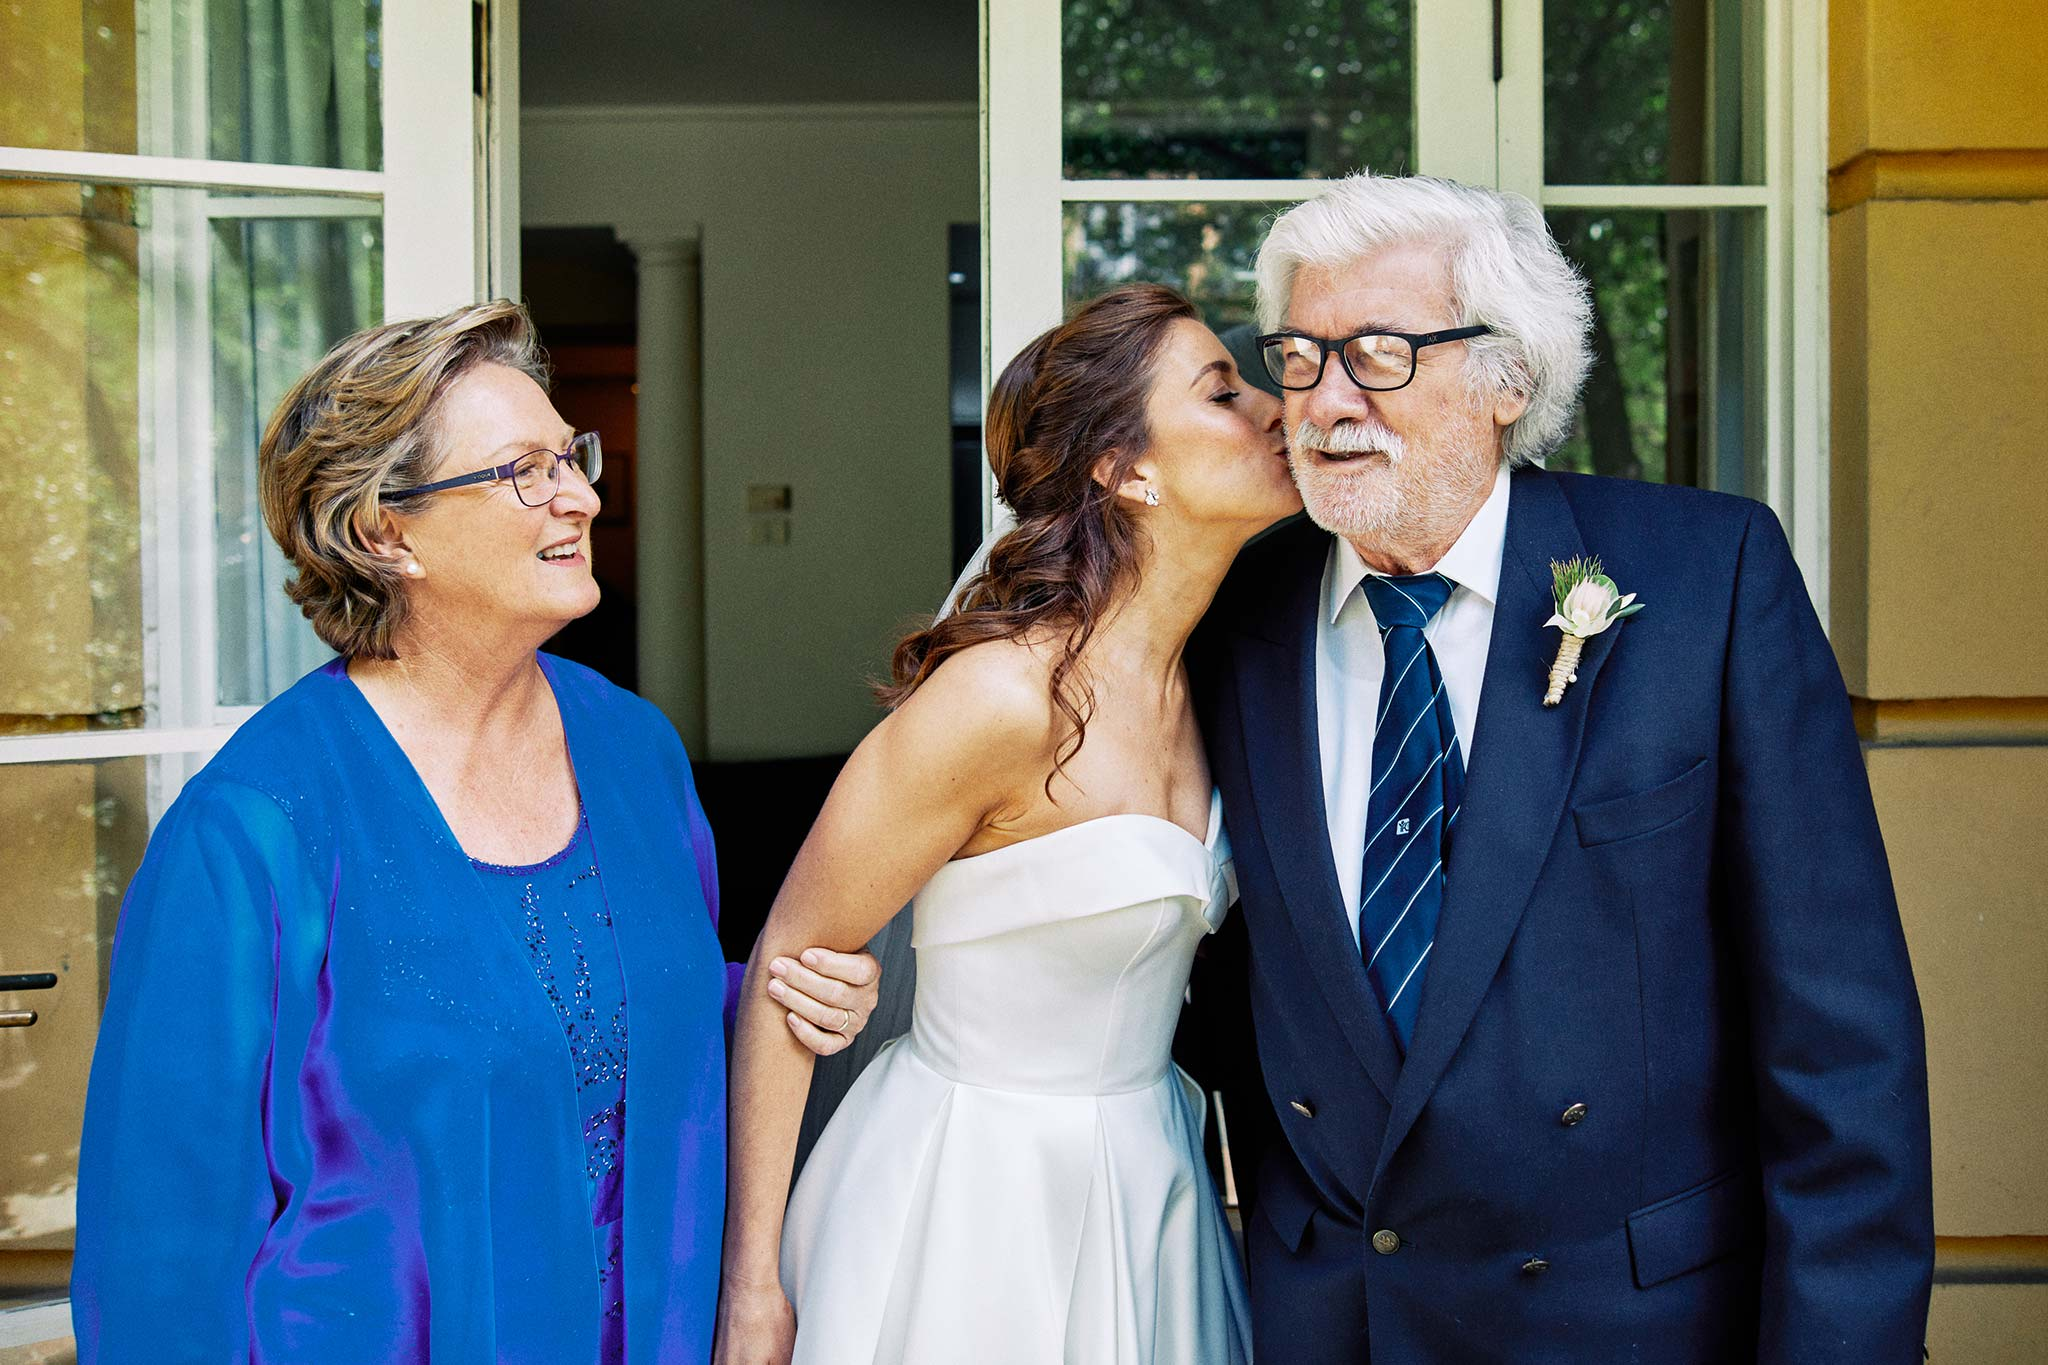 East Melbourne Wedding bride getting ready bride kissing father